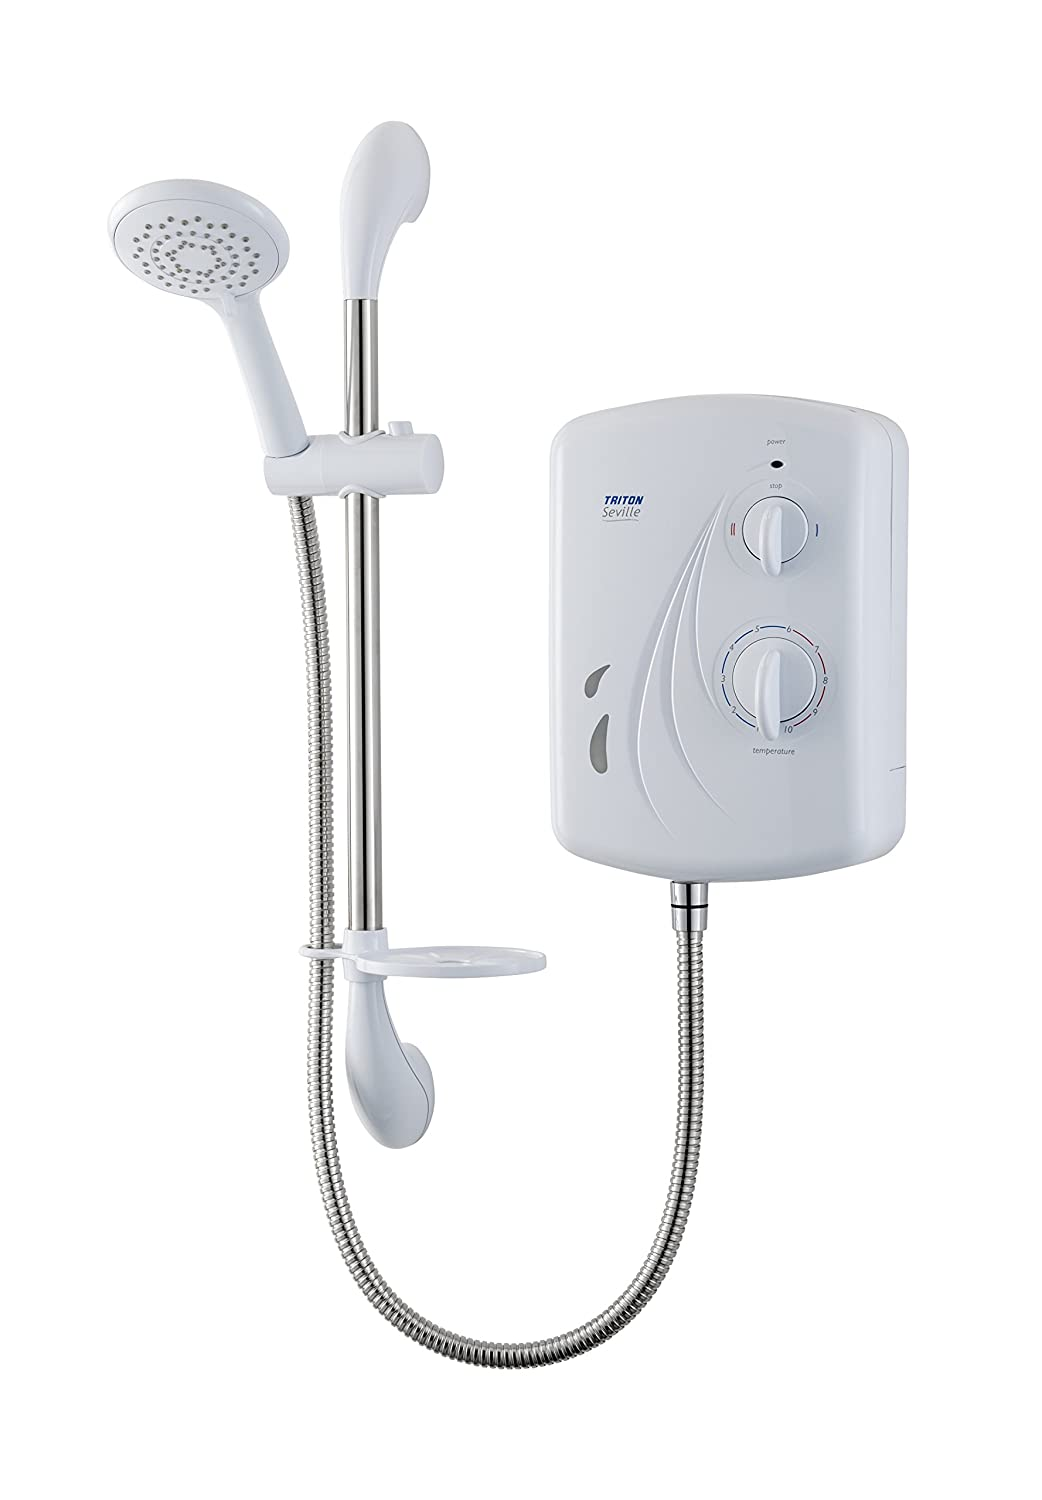 Triton seville electric shower water heater boiler free delivery ebay - Shower water heater ...